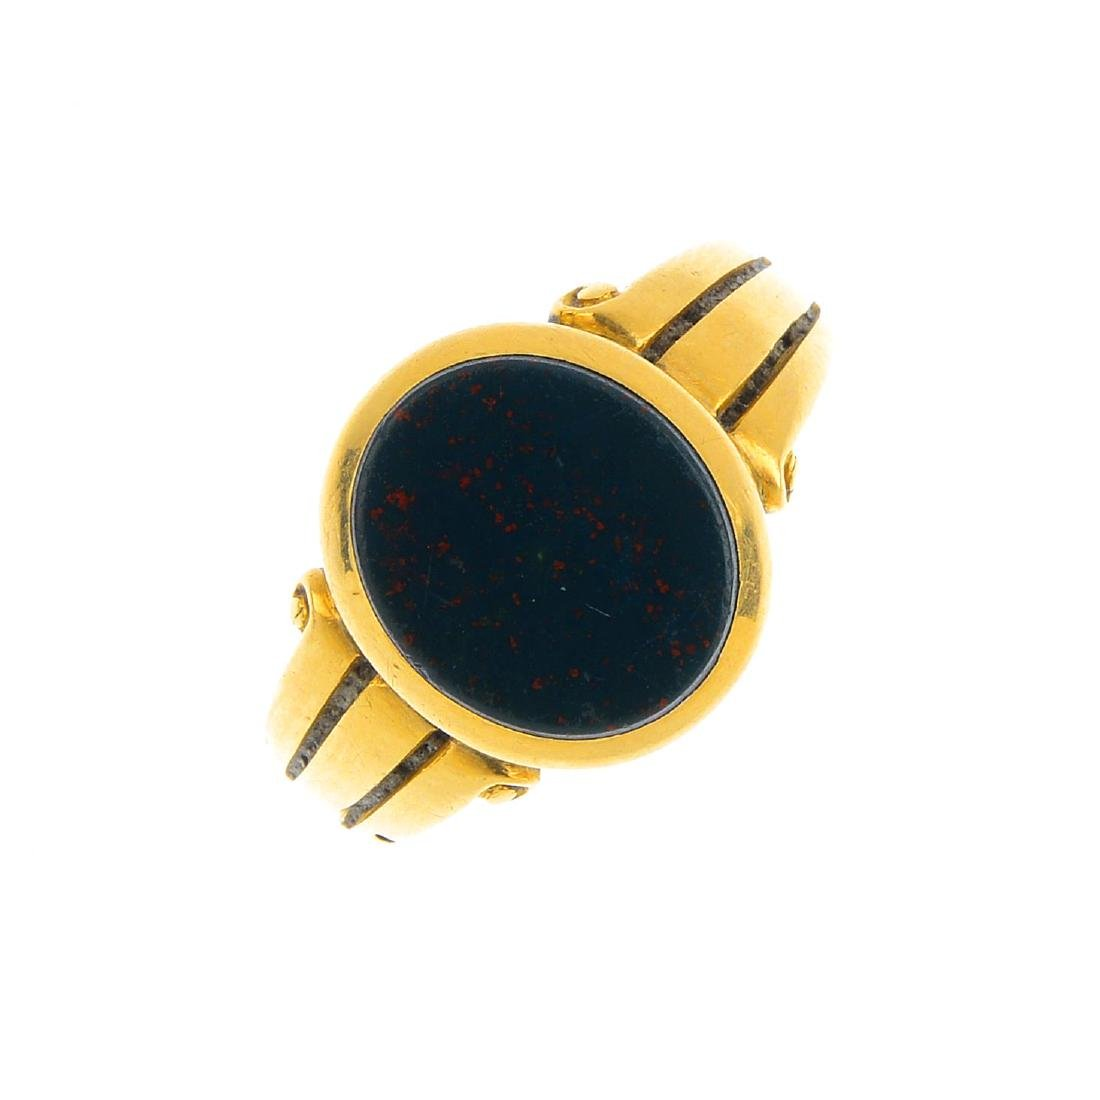 A late Victorian 18ct gold bloodstone signet ring. The